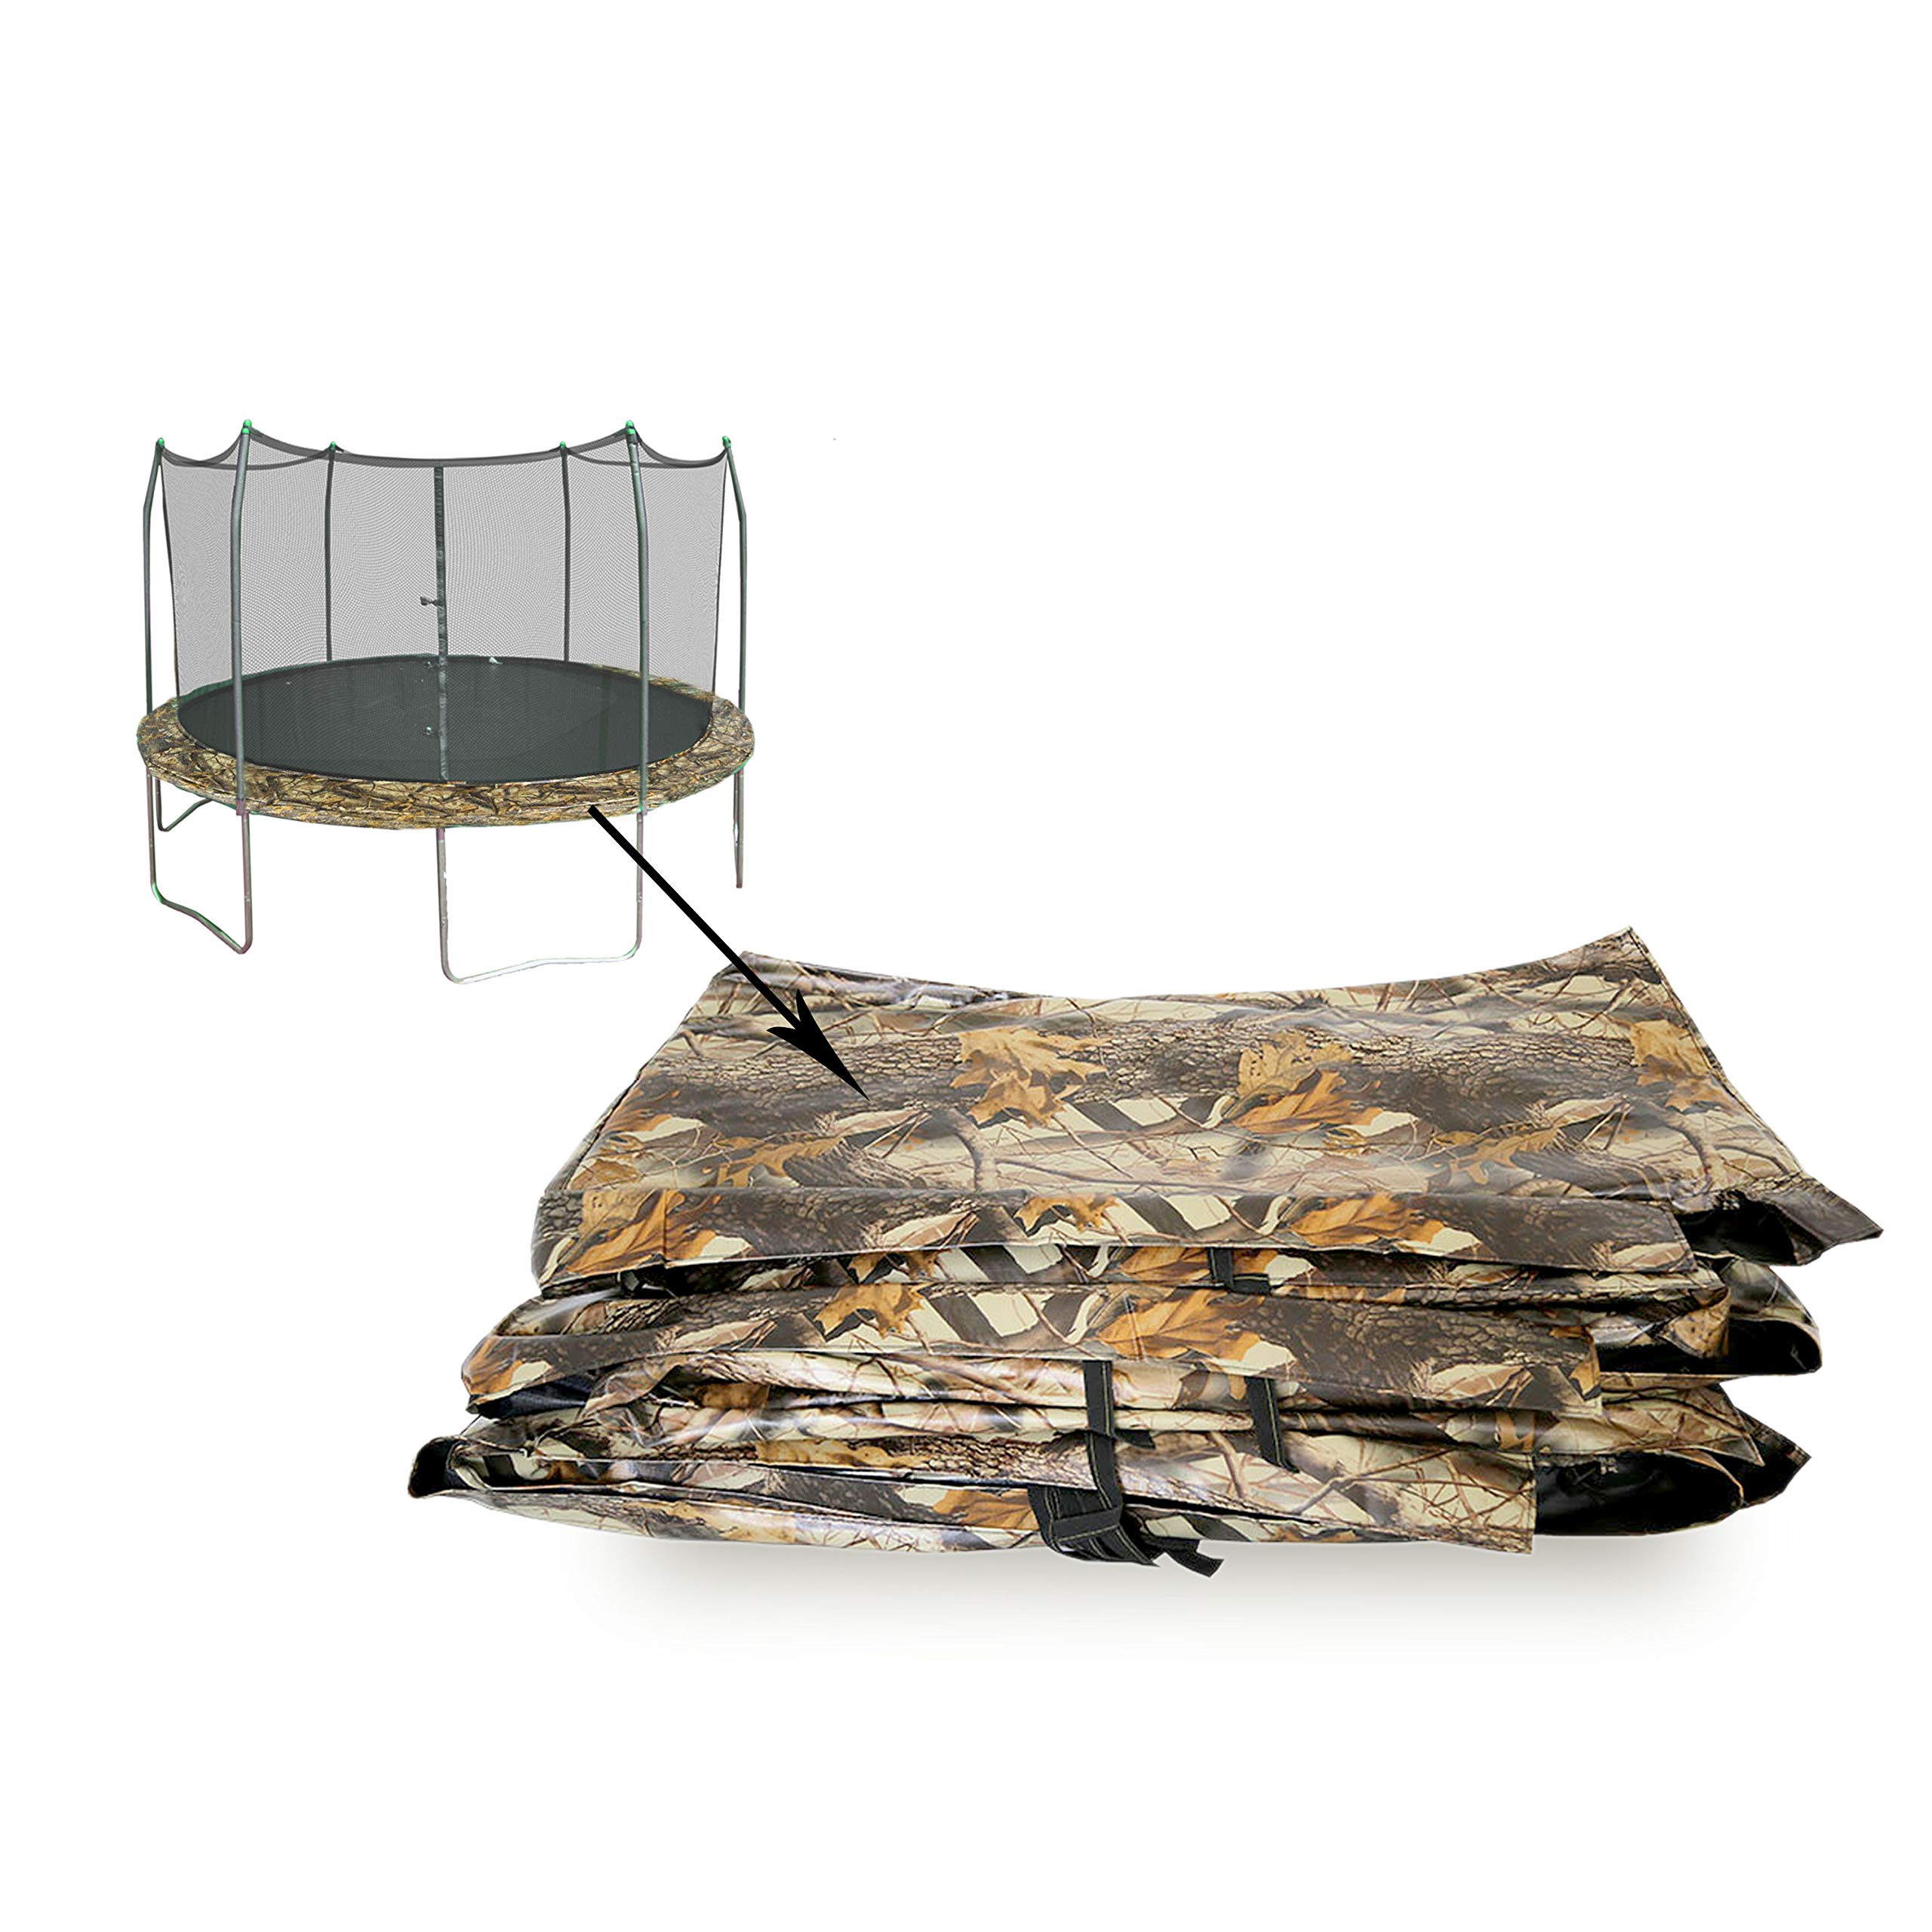 Skywalker Trampolines Camo 12' Round Spring Pad by Skywalker Trampolines (Image #2)